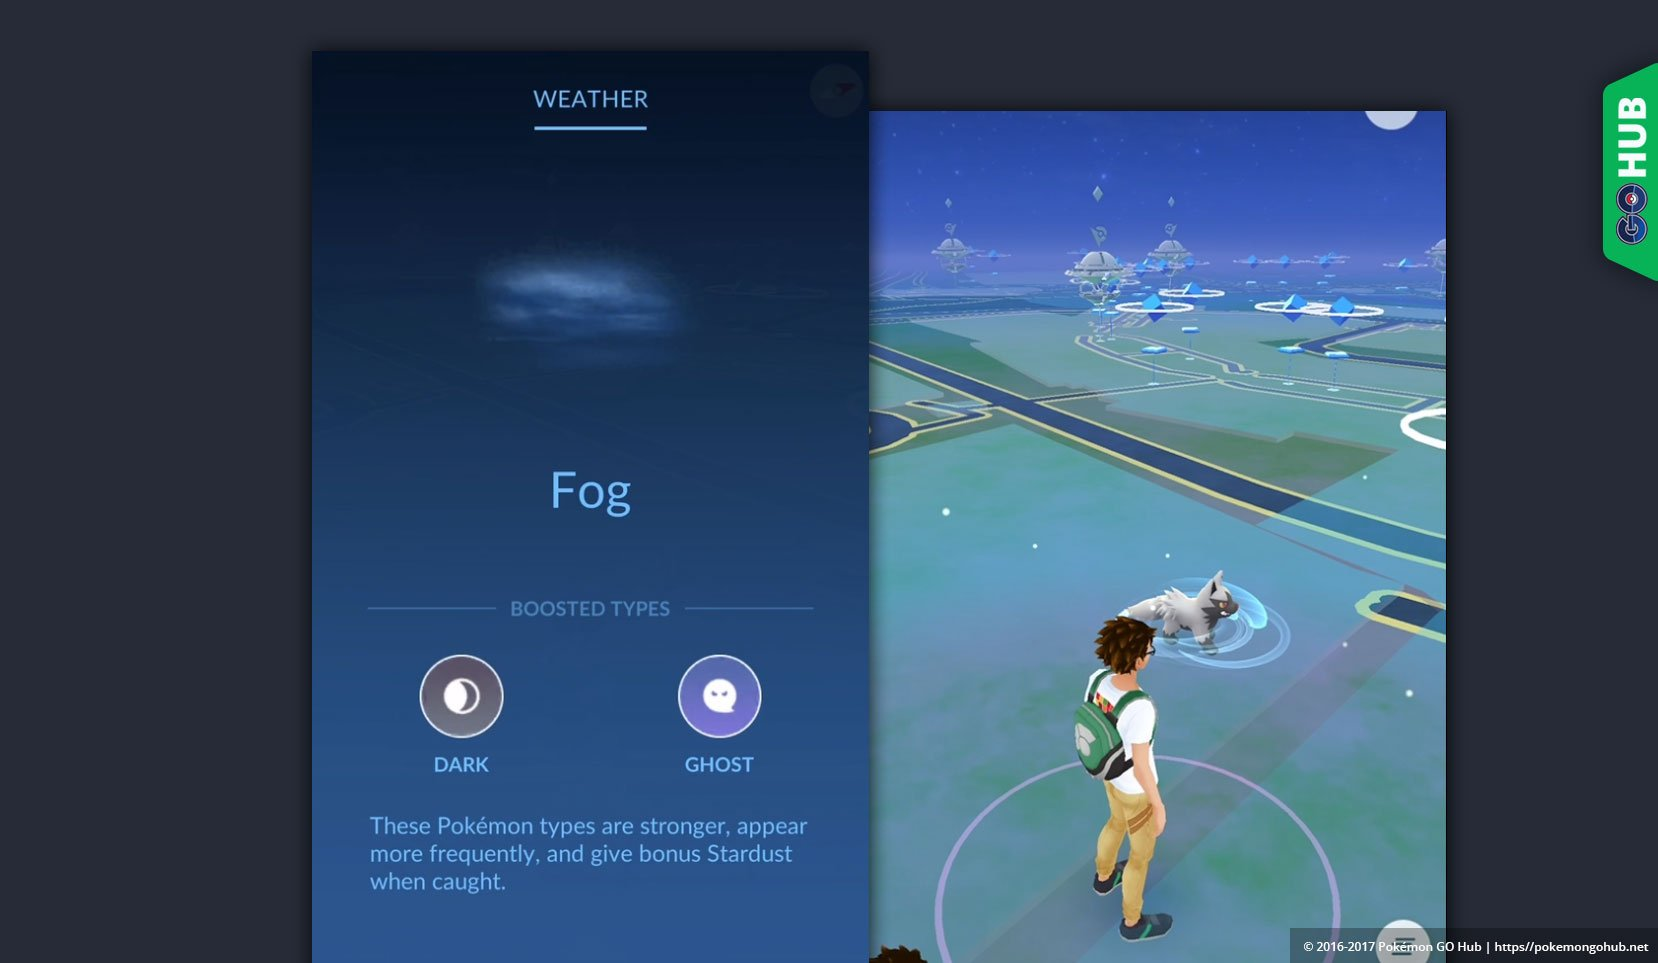 Pokemon GO Foggy Weather